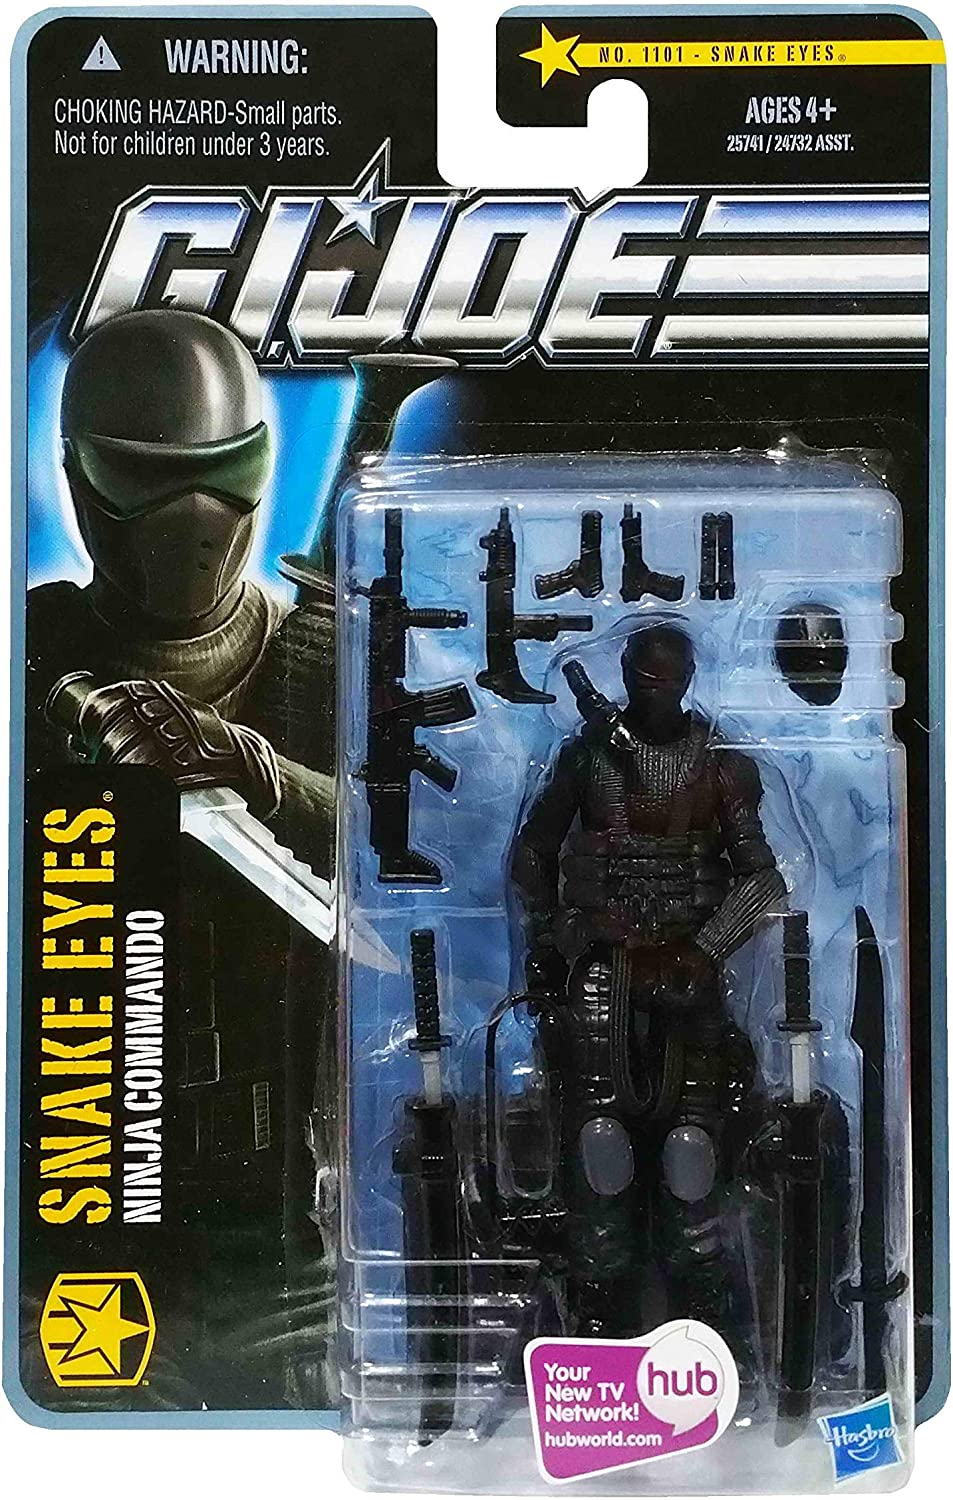 GI Joe The Pursuit of Cobra (POC) #1101: Snake Eyes (Ninja Commando) 3.75 Inch Action Figure